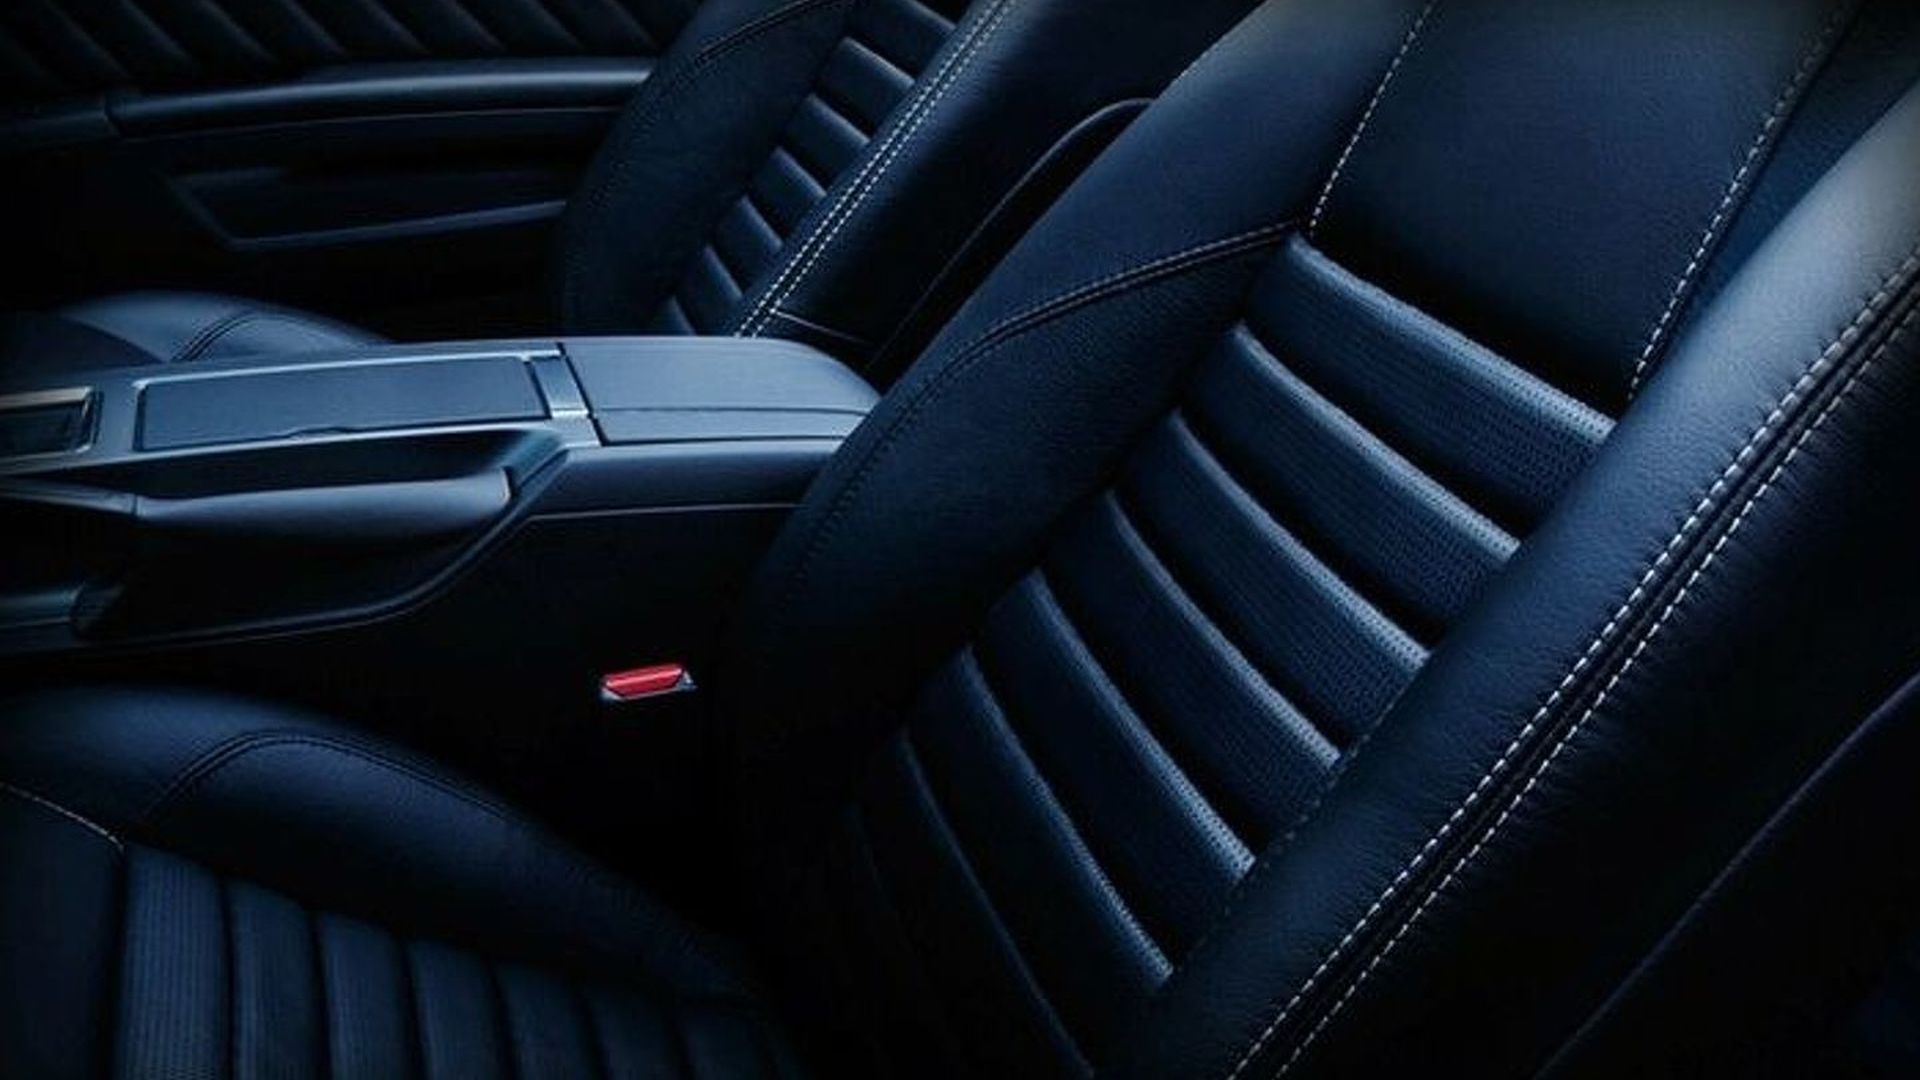 Yet More 2010 Ford Mustang Teasers Released